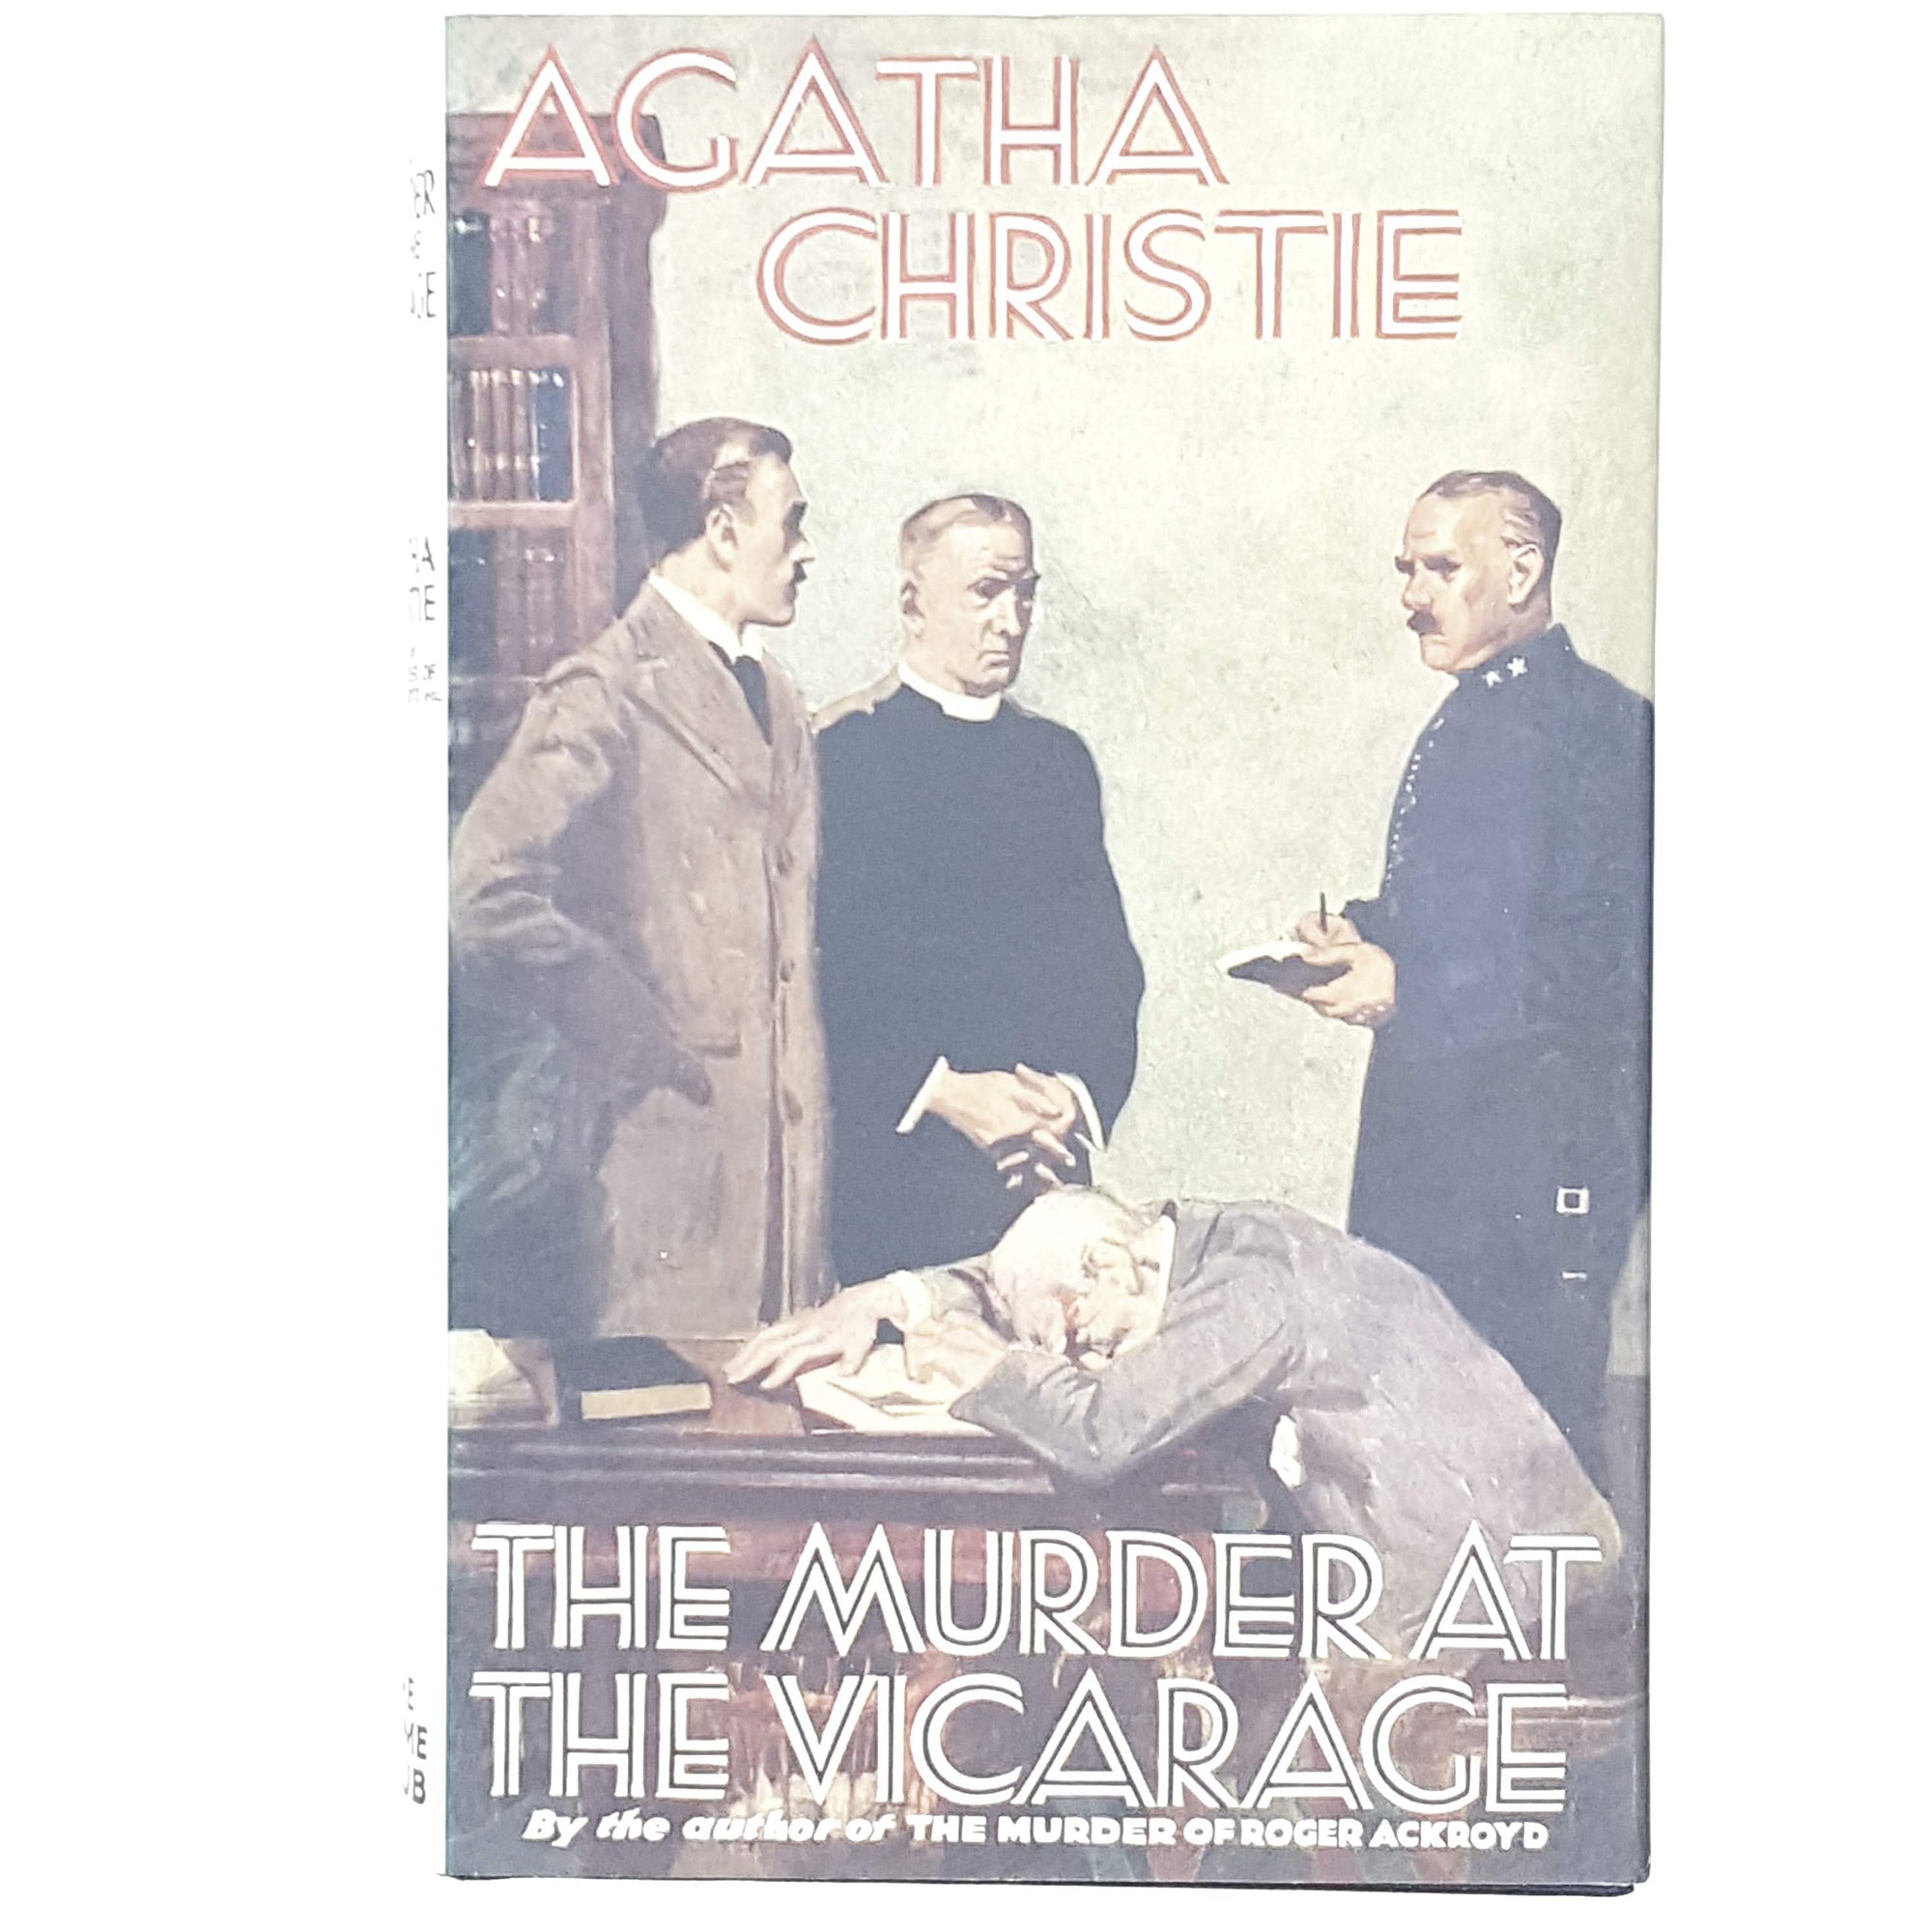 Agatha Christie's The Murder at the Vicarage